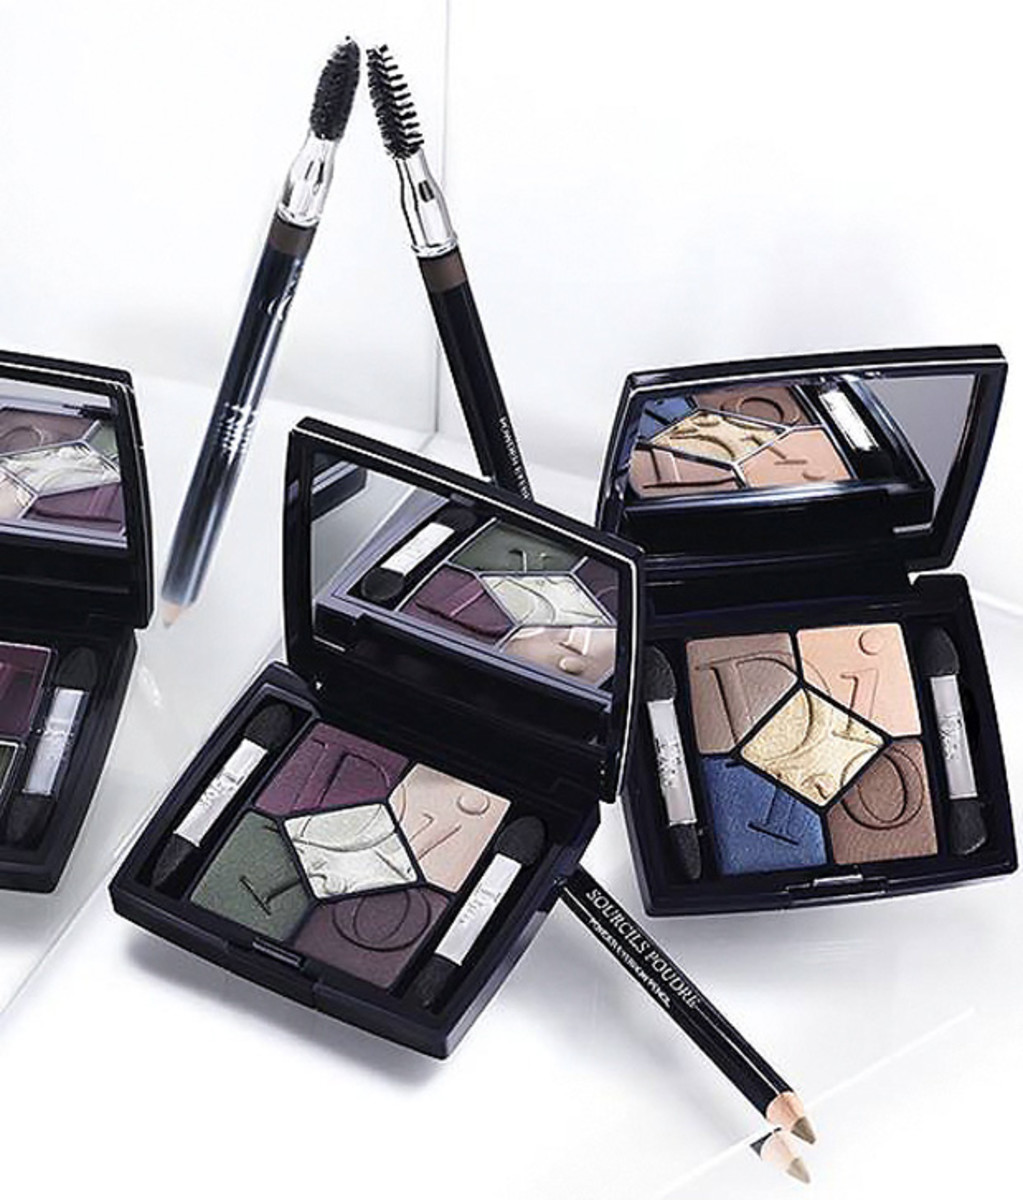 Dior Cosmopolite Fall 2015_ 5 colour eyeshadow palettes